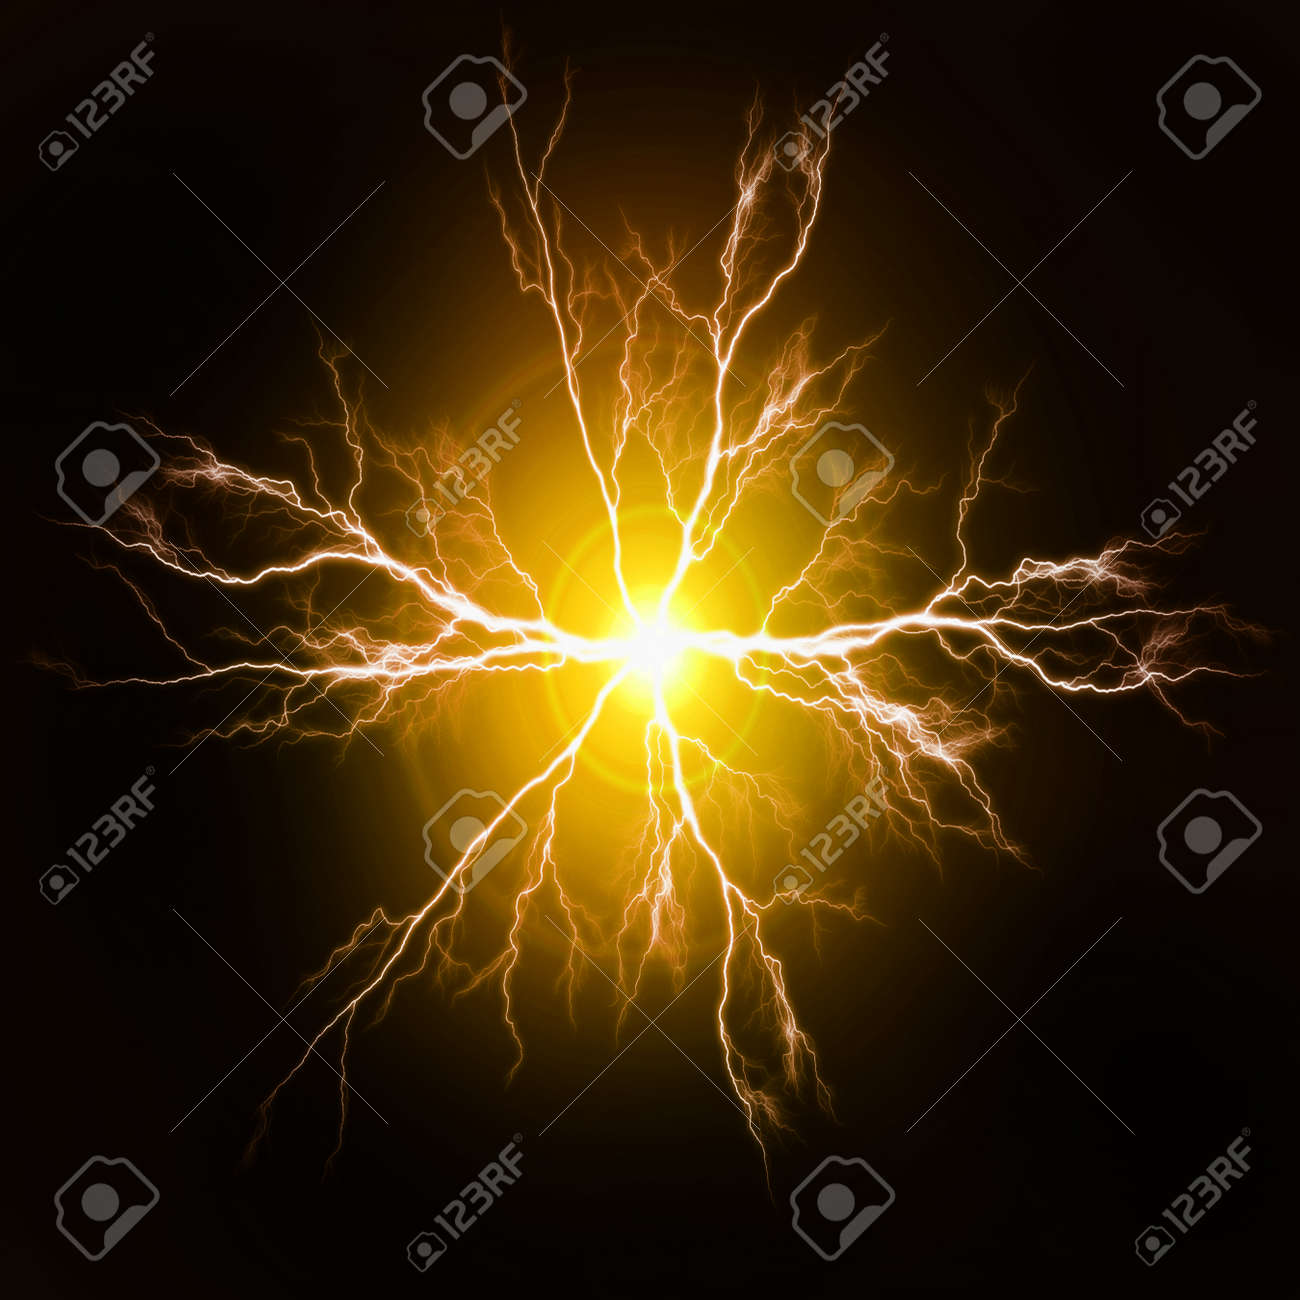 Explosion of pure power and yellow electricity in the dark - 155489026